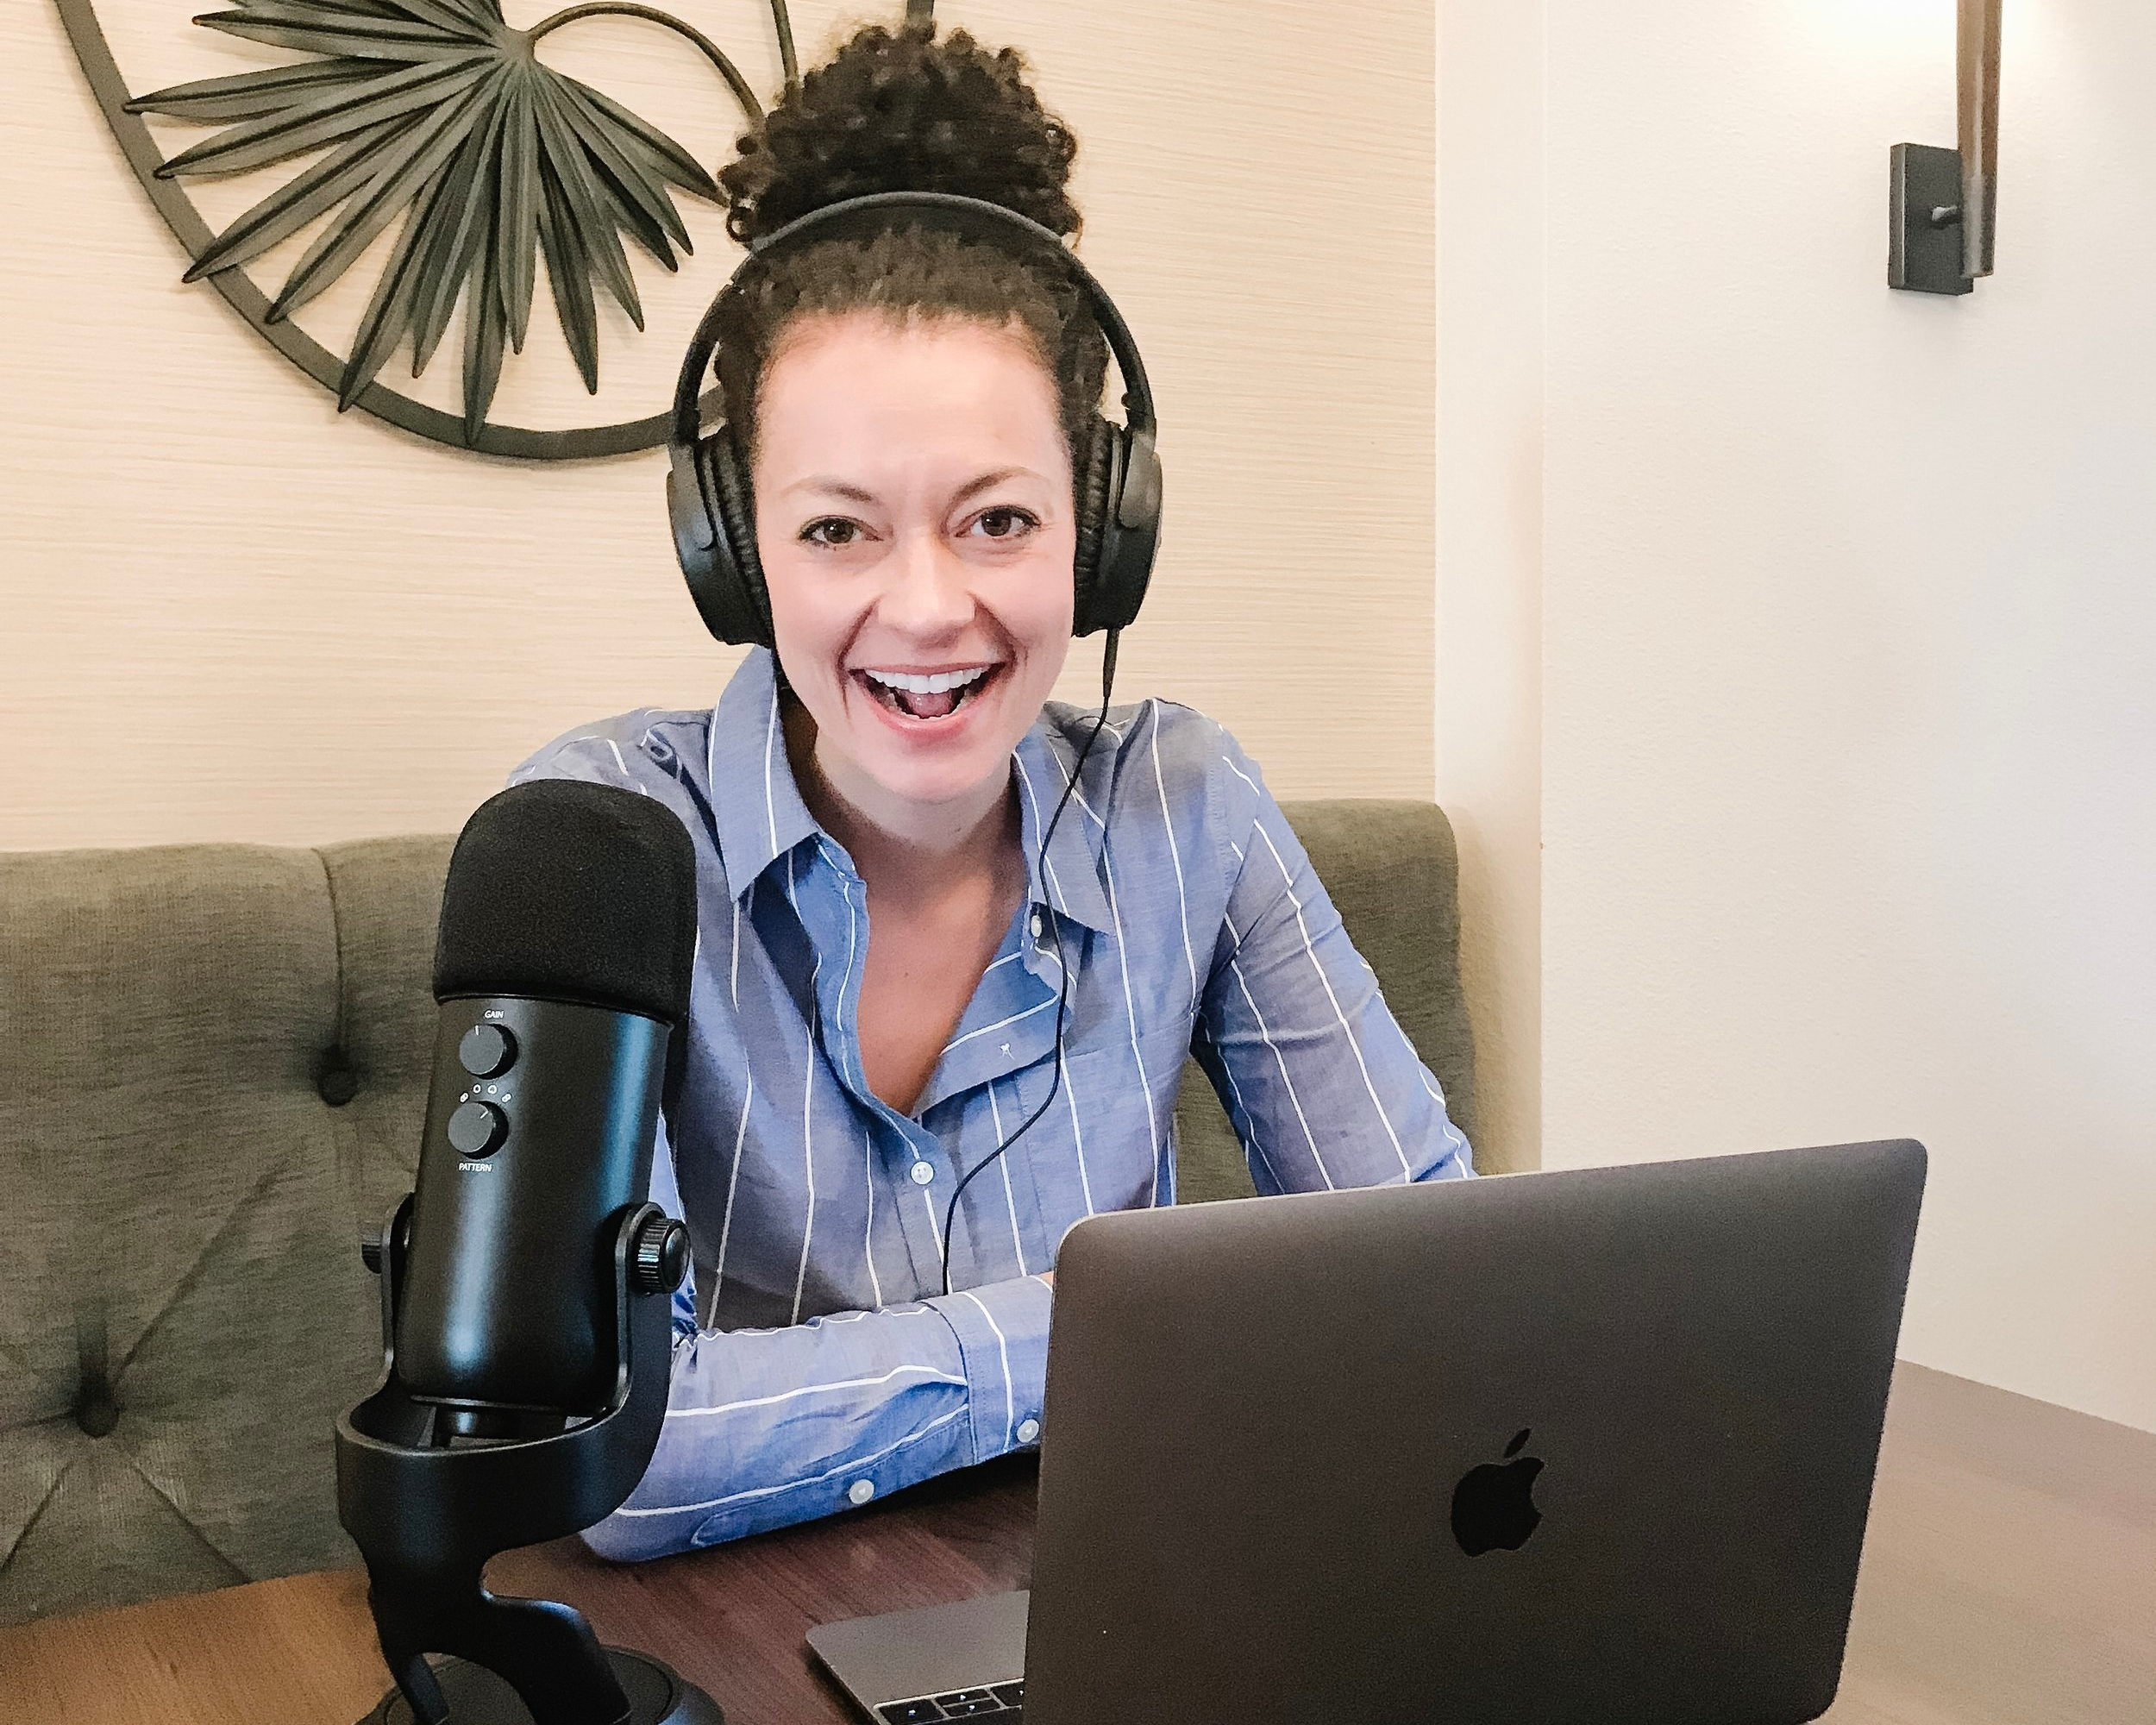 - Join Dr. Lauren Daley as she shares stories from the crossroads of life and death. Whether you're grieving the loss of a loved one, have deep questions about life's greatest mystery, or simply enjoy listening to candid stories from fellow mortals, this is the podcast for you.